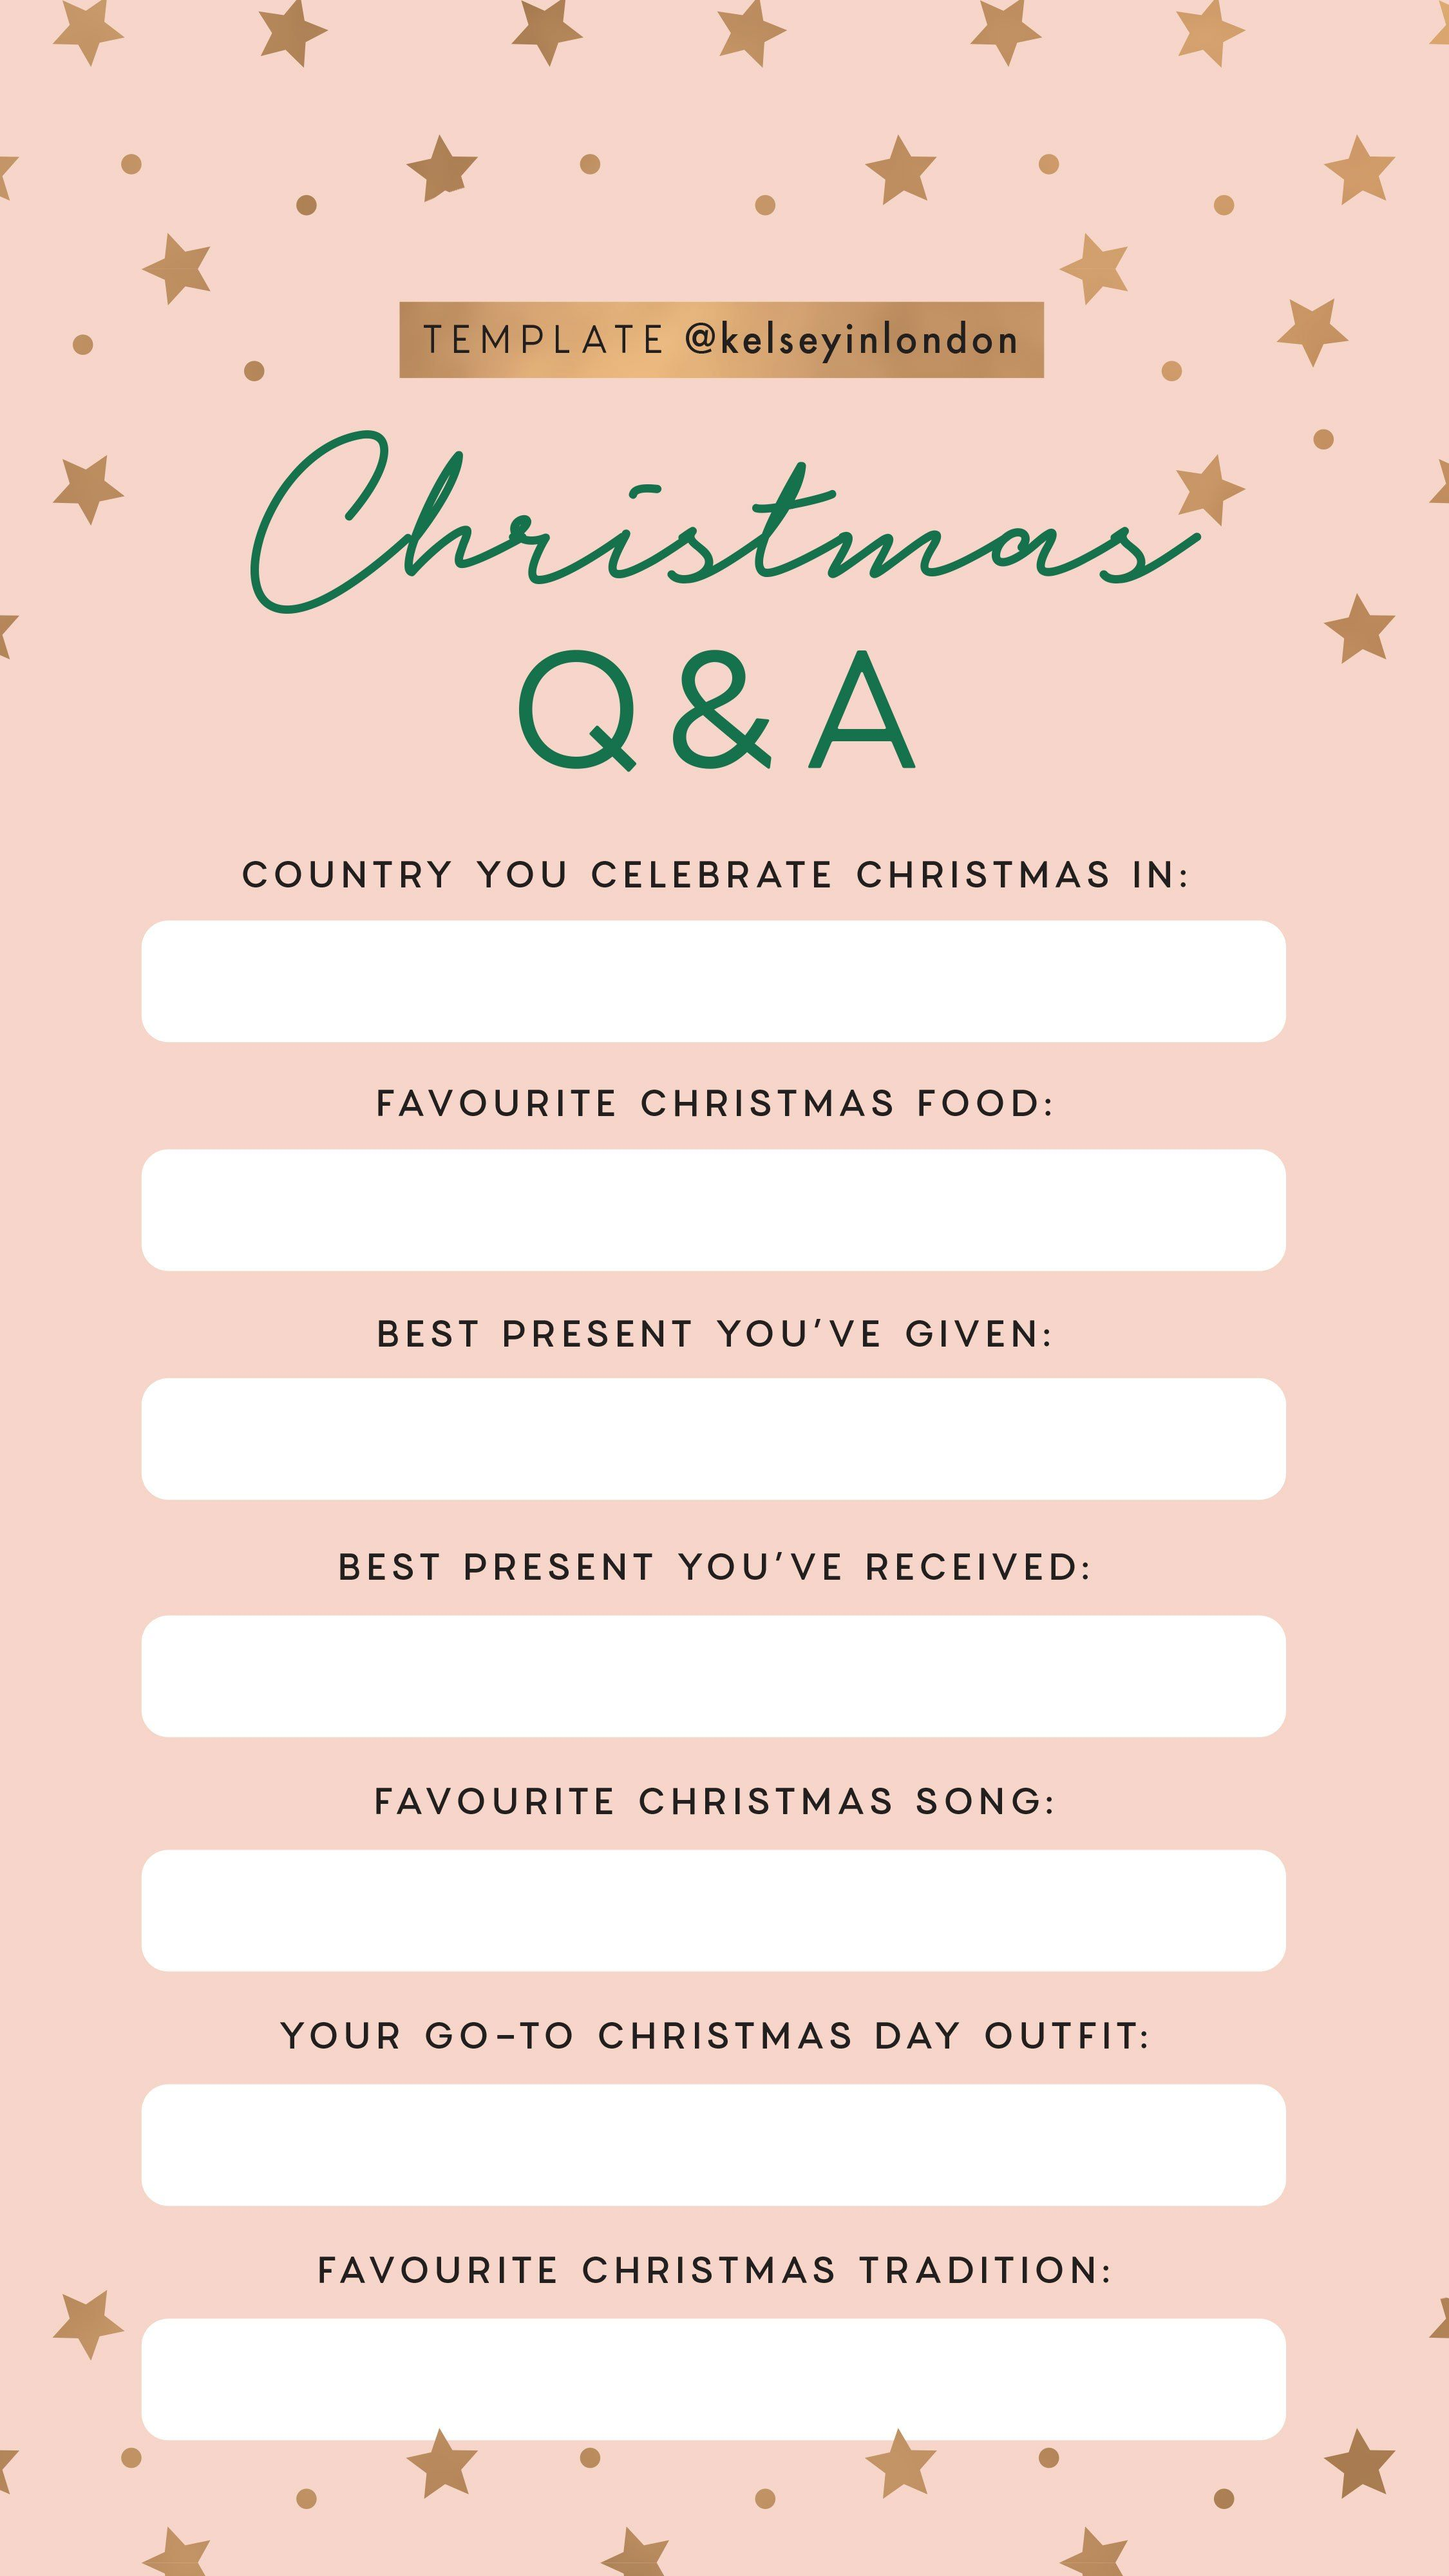 Adopt A Family Christmas Wish List Template.Instagram Story Template Kelseyinlondon Kelsey Heinrichs